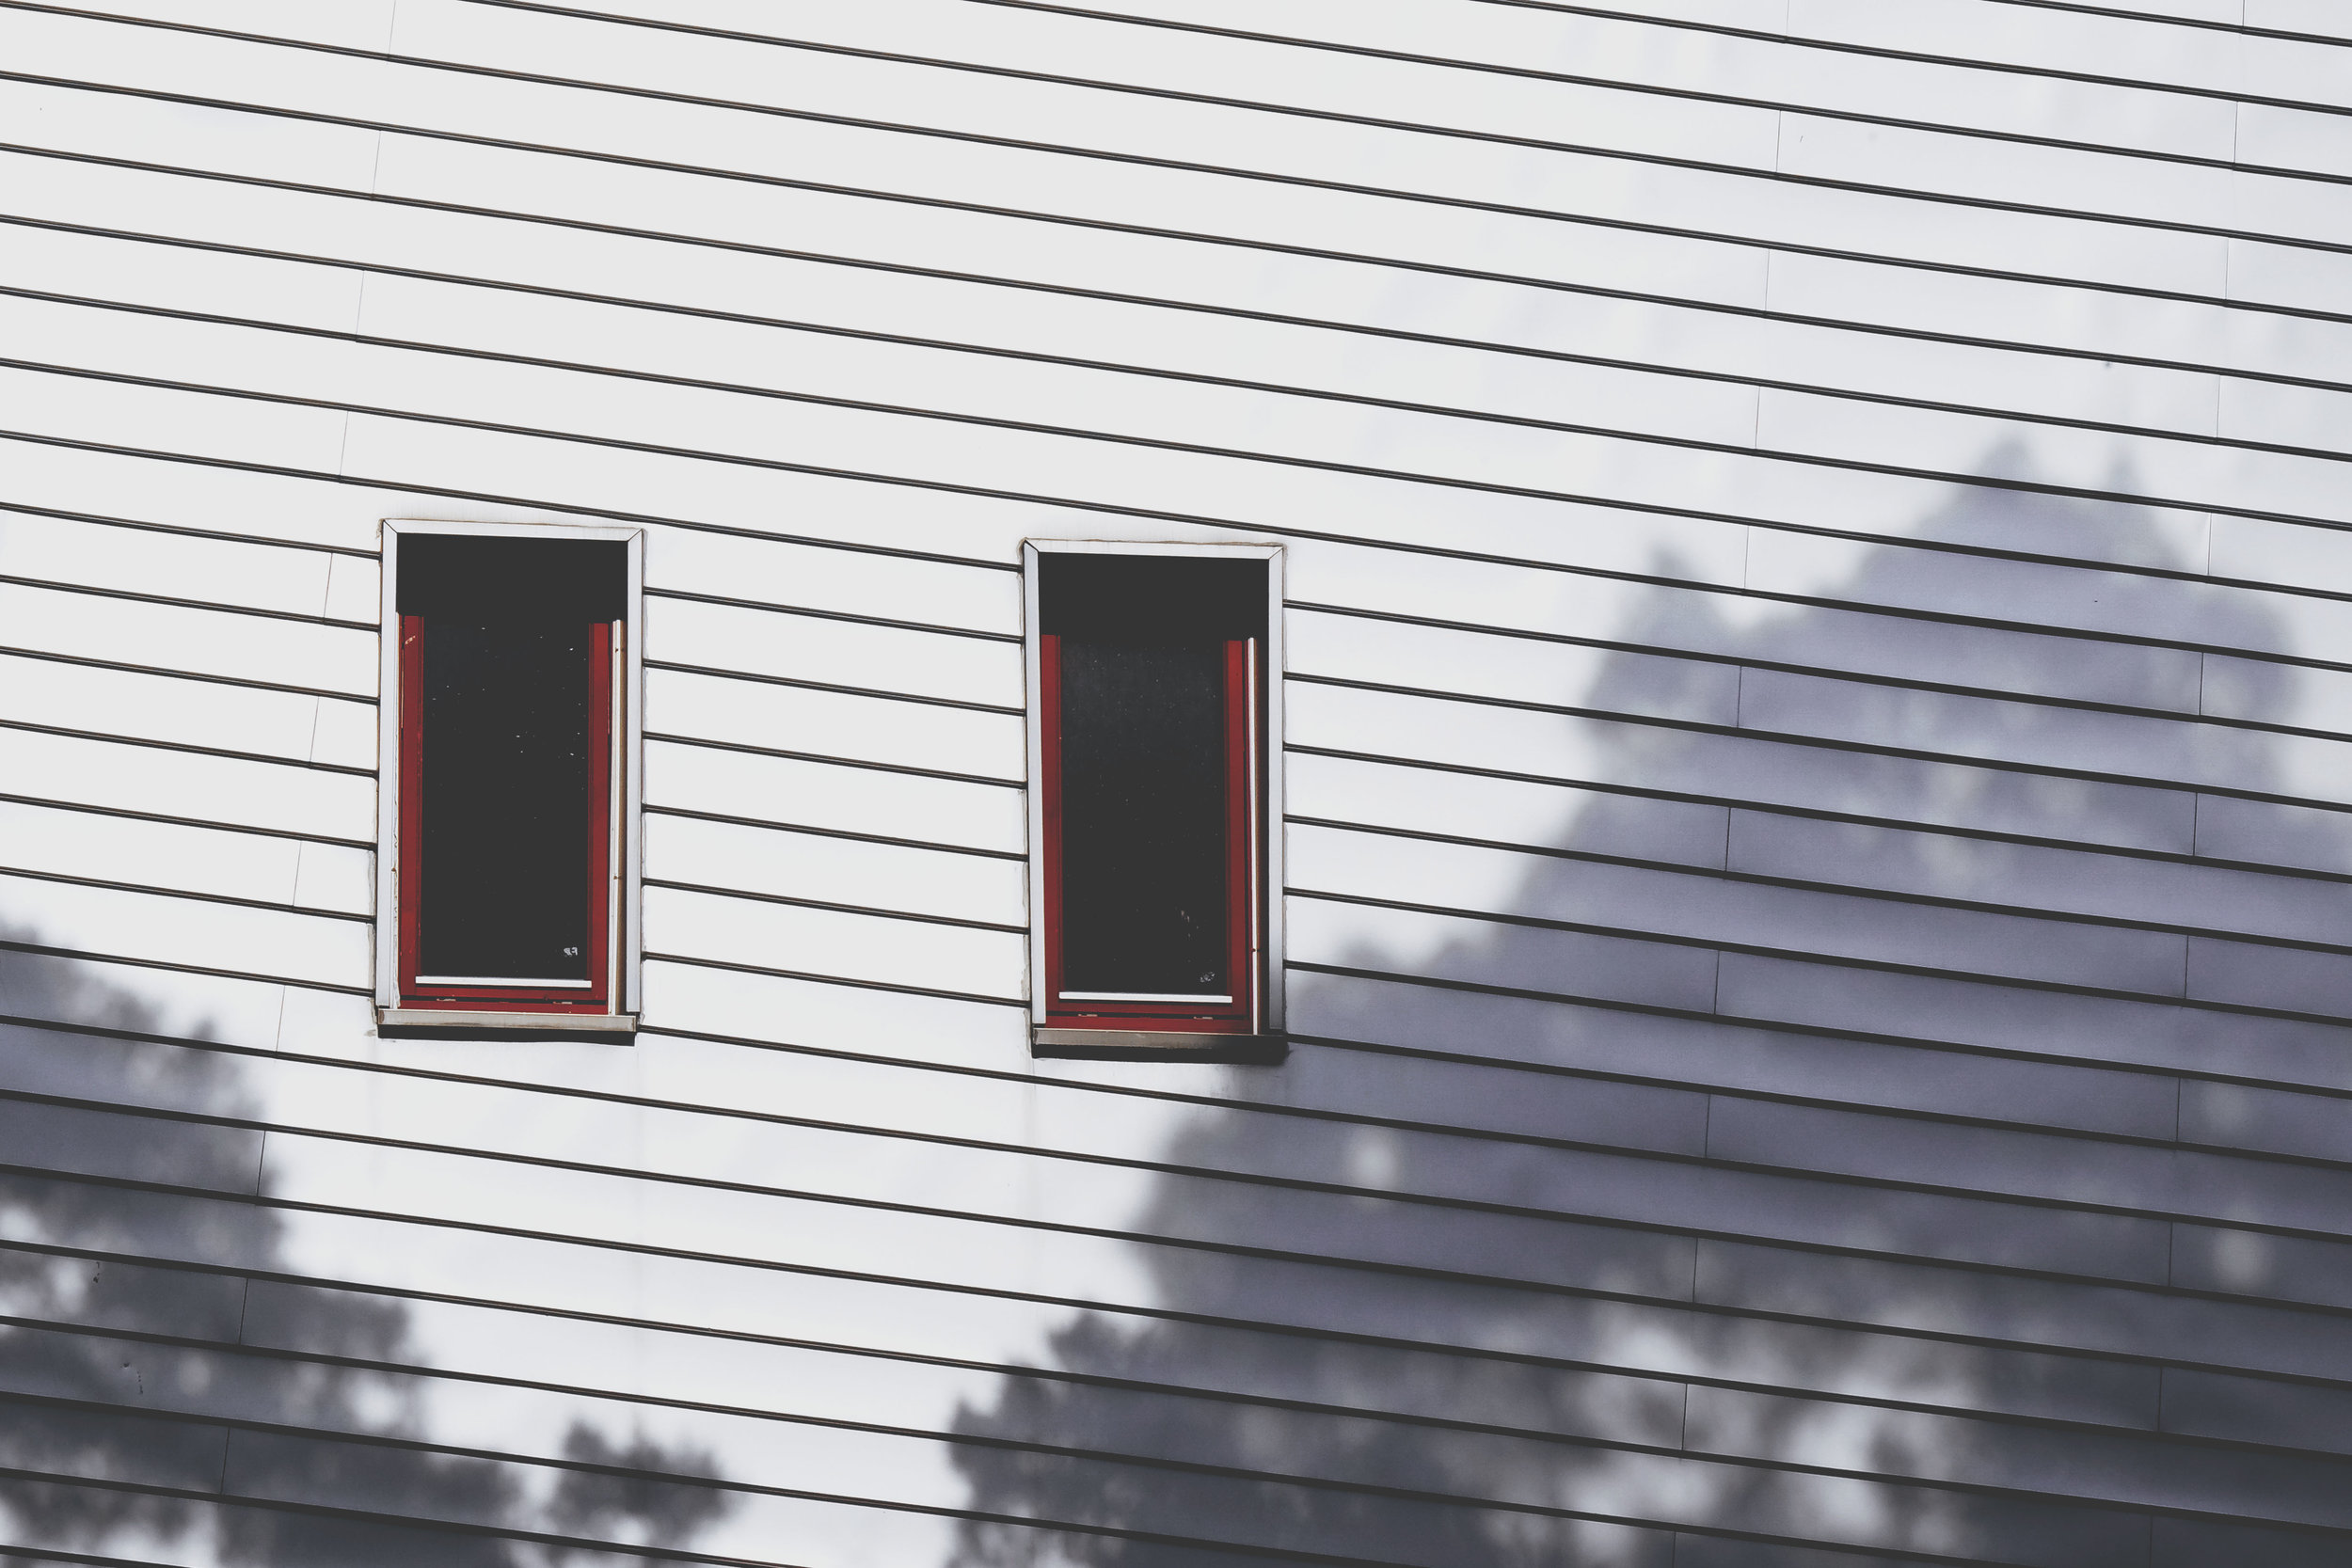 Picture of siding.